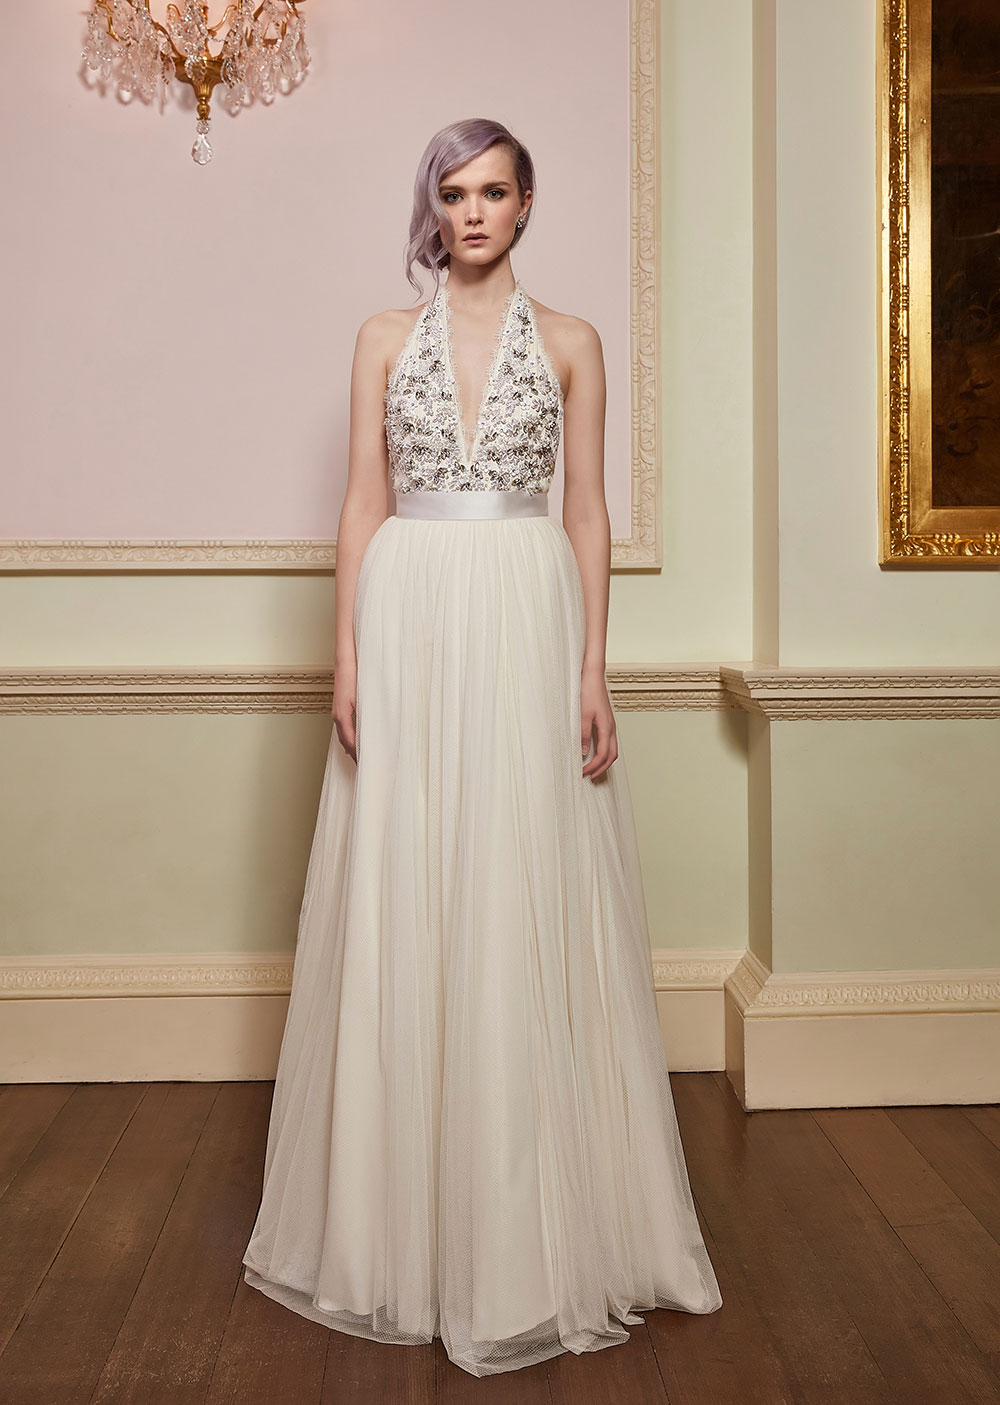 Verity & Romance - Jenny Packham 2018 Bridal Collection. www.theweddingnotebook.com